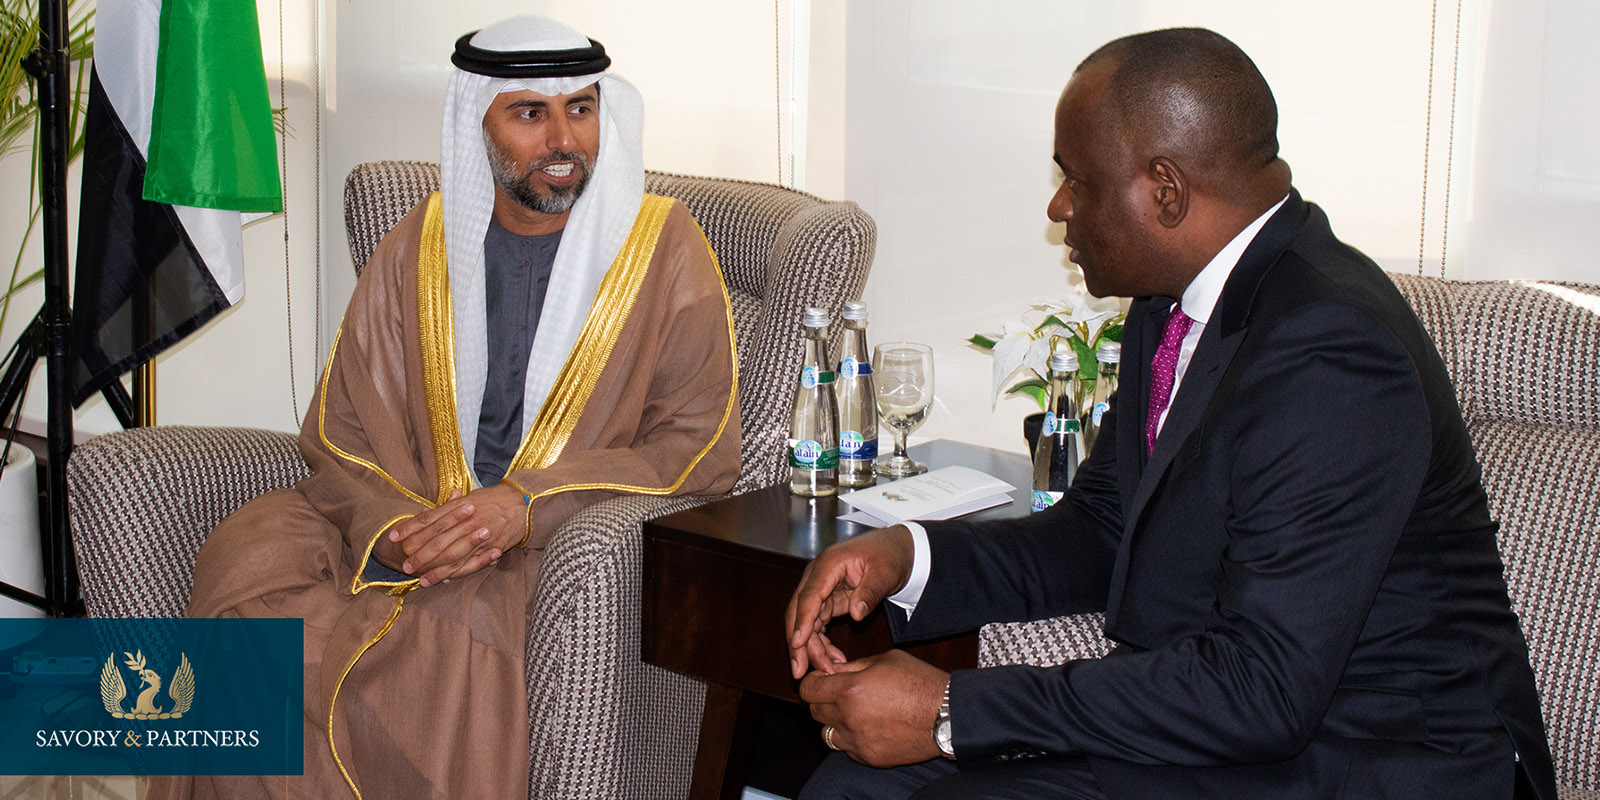 The UAE Minister of Energy and Industry, Suhail Al Mazroui & Honorable Roosevelt Skerrit, Prime Minister of the Commonwealth of Dominica.